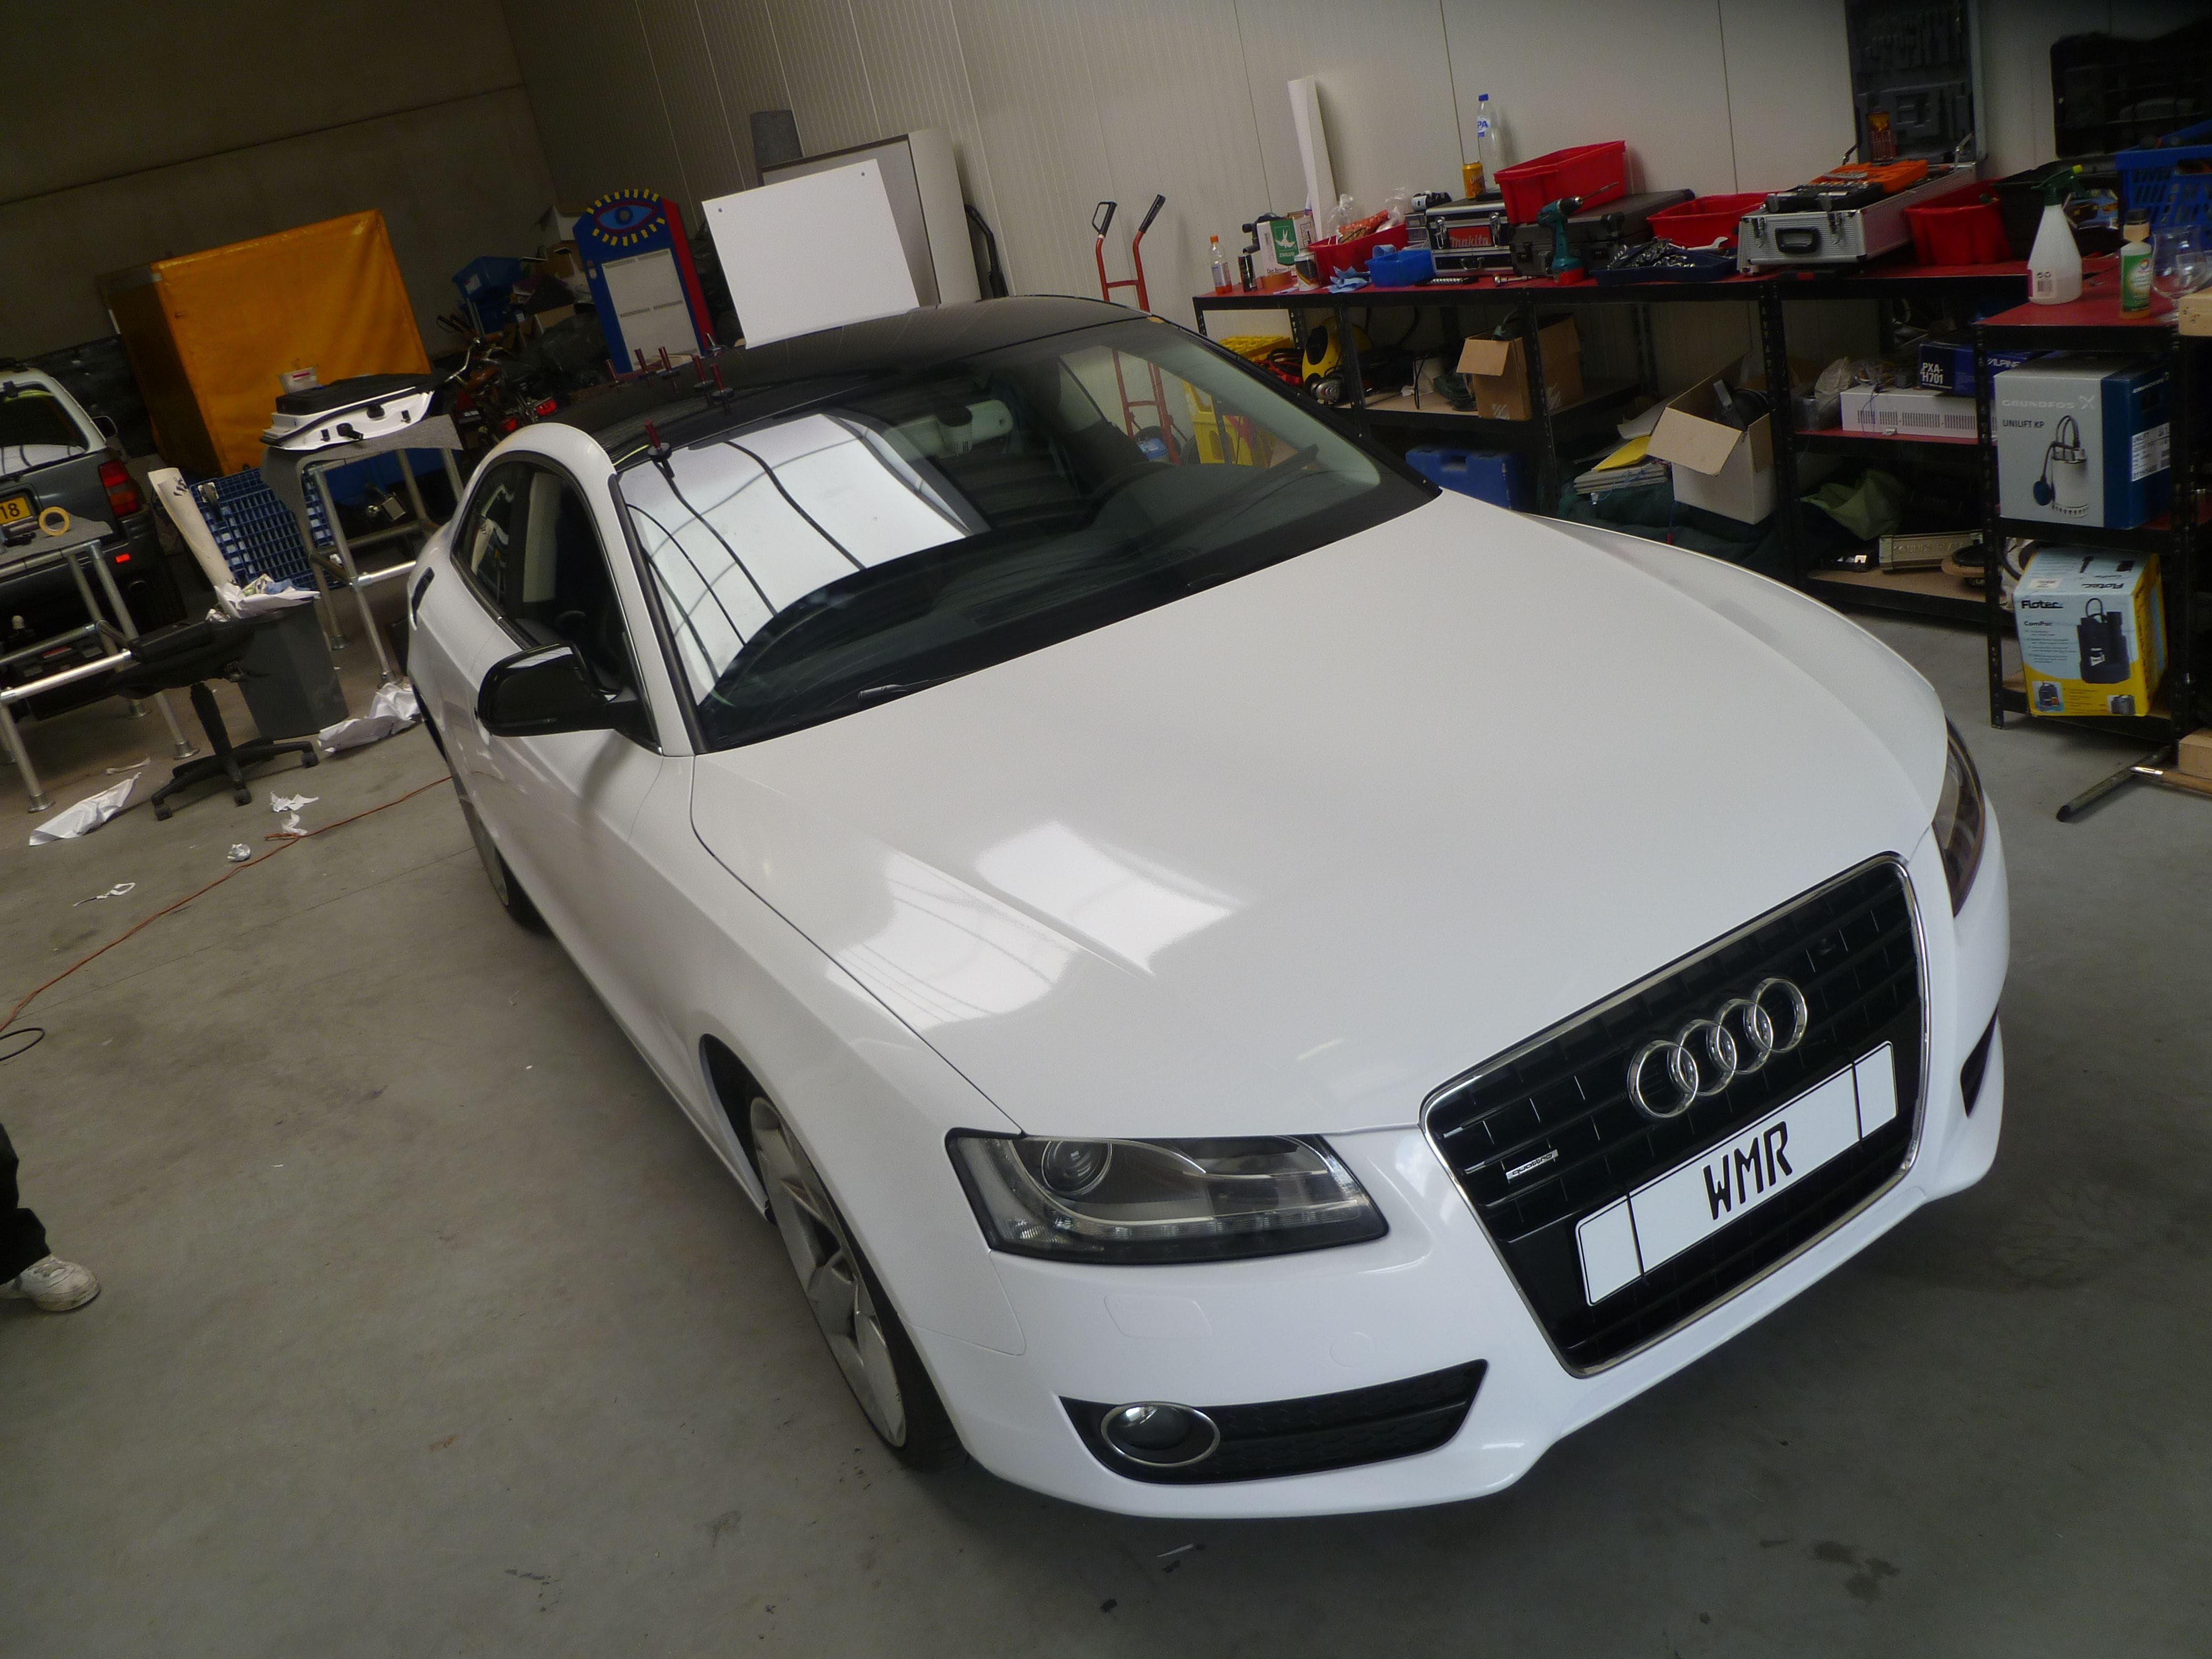 Audi A5 coupe met Metallic Witte Wrap, Carwrapping door Wrapmyride.nu Foto-nr:4726, ©2020